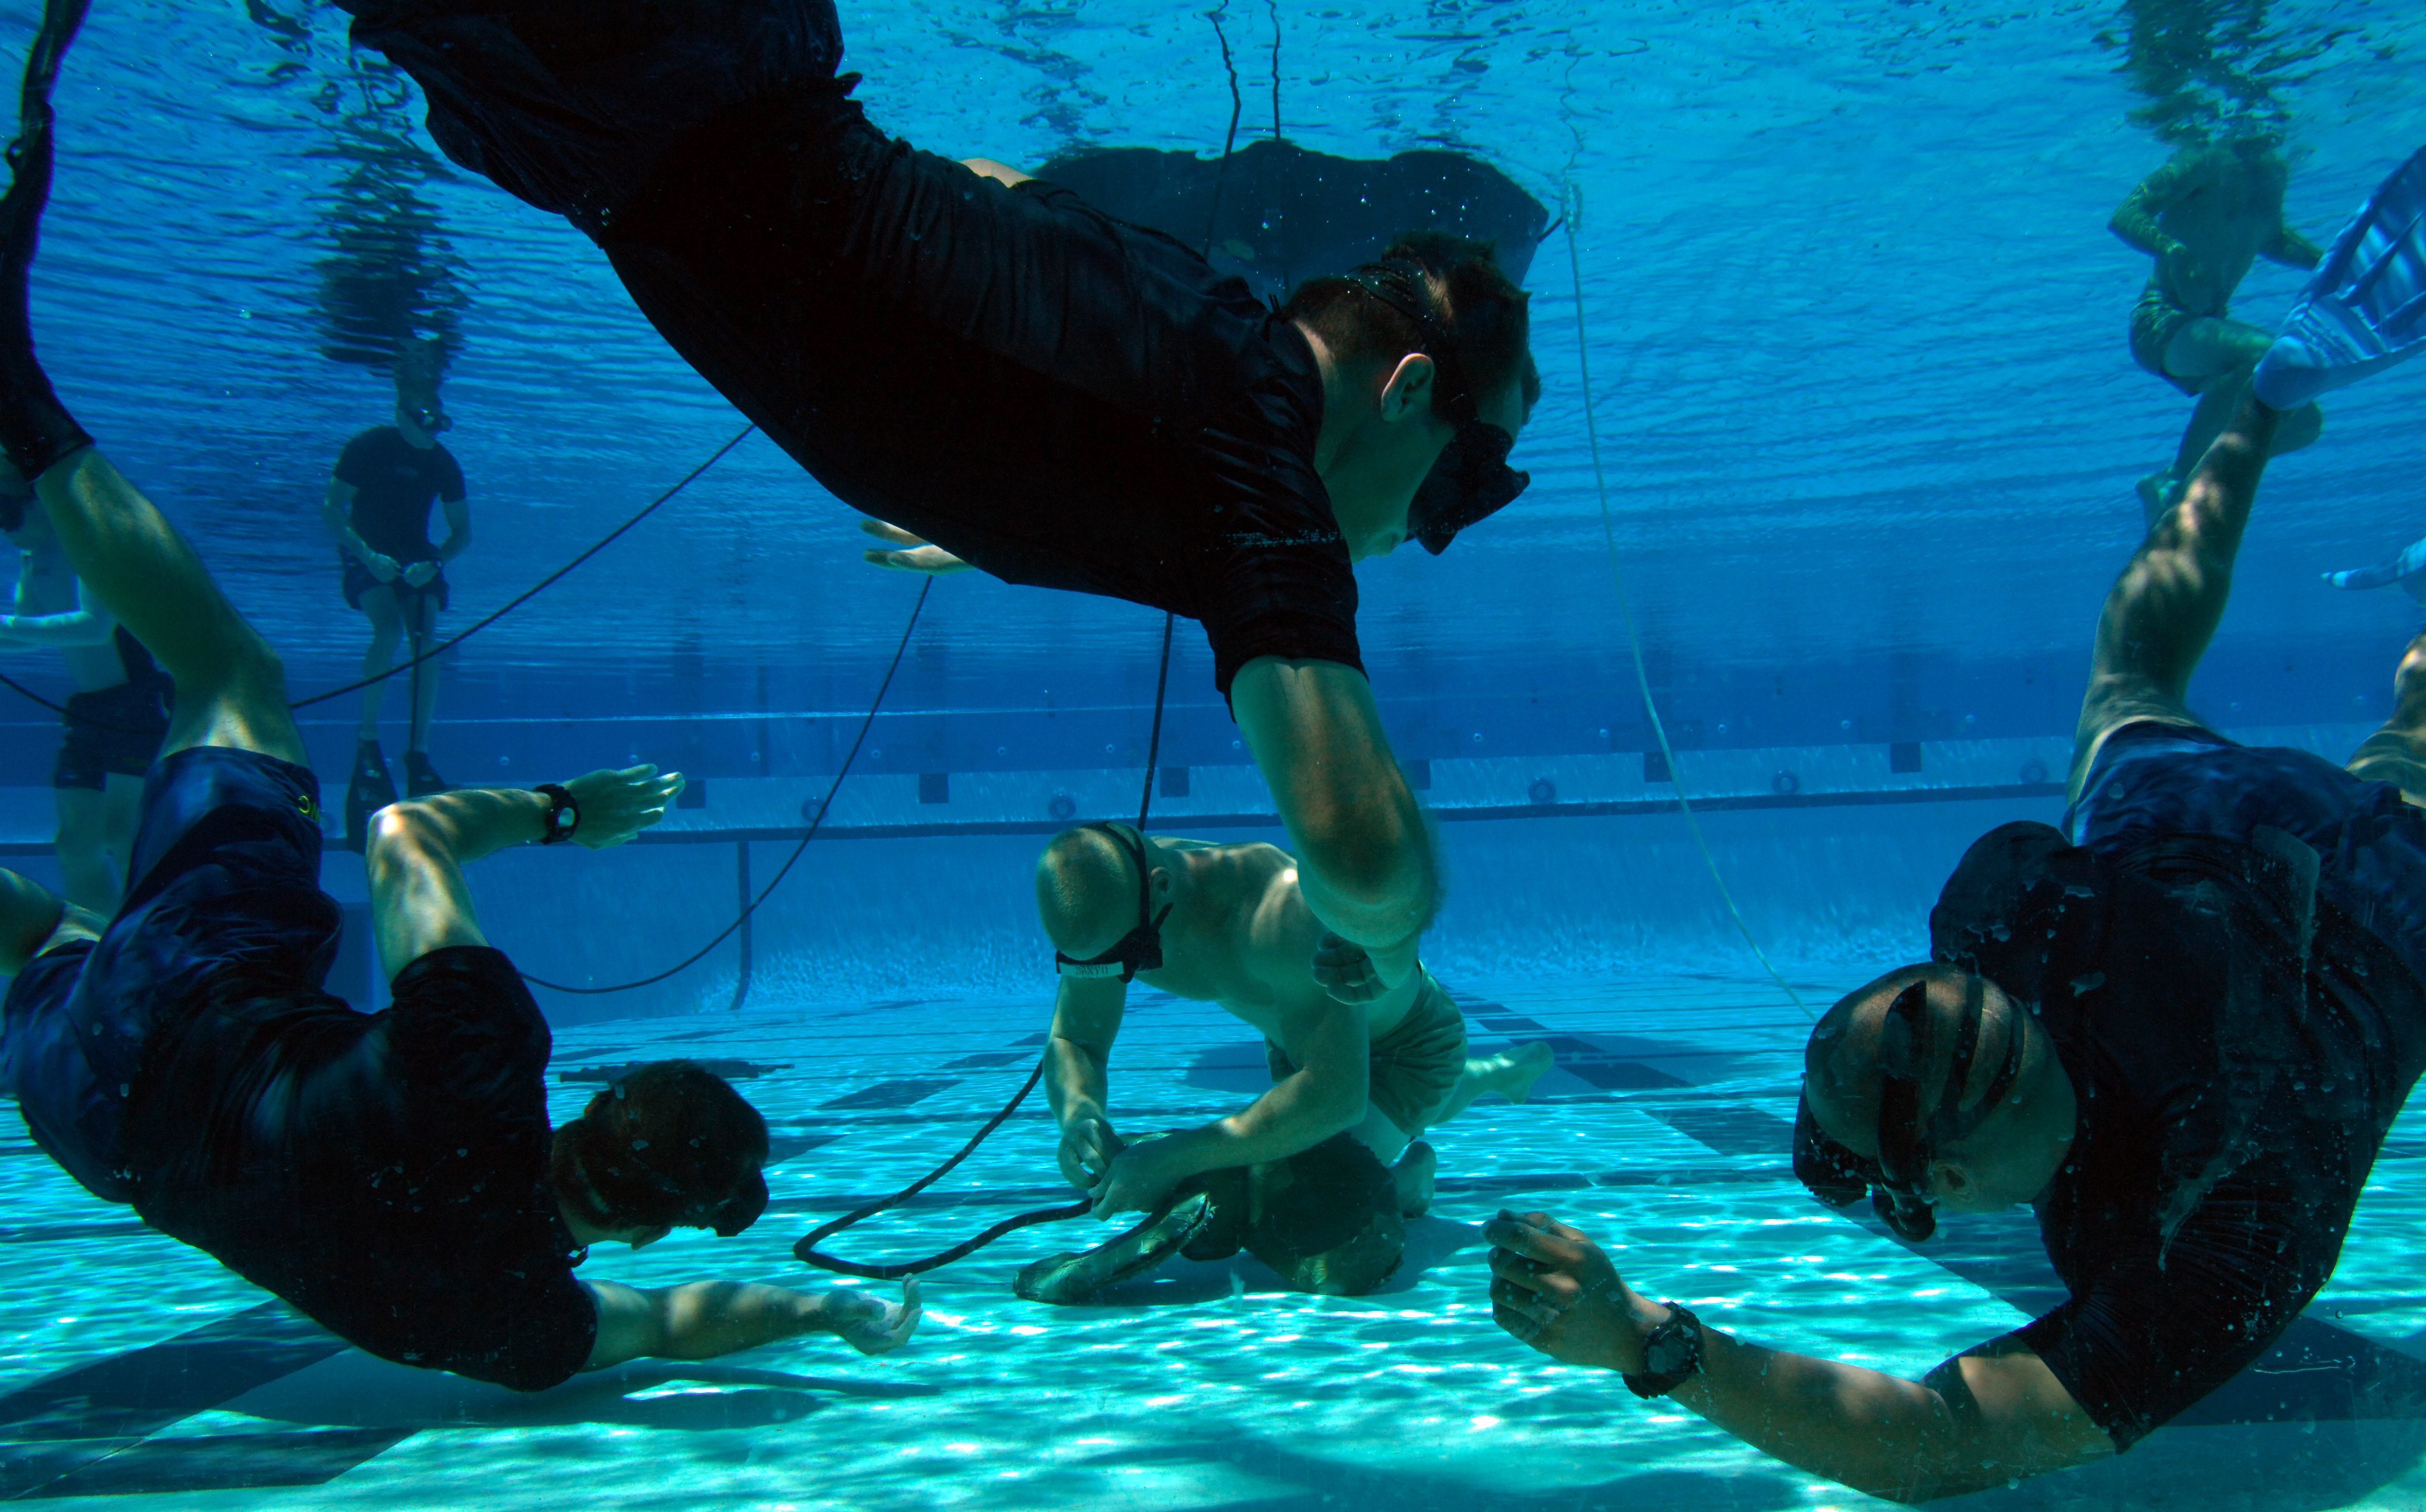 Instructors watch a Basic Crewman Training (BCT) student demonstrate knot-tying skills during water proficiency training at Naval Amphibious Base Coronado. BCT is the first phase of the Special Warfare Combatant-Craft Crewman (SWCC) training program. SWCCs operate and maintain the Navy's inventory of state-of-the-art, high-performance boats used to support SEALs in special operations missions worldwide. U.S. Navy photo by Mass Communication Specialist 2nd Class Christopher Menzie (Released)